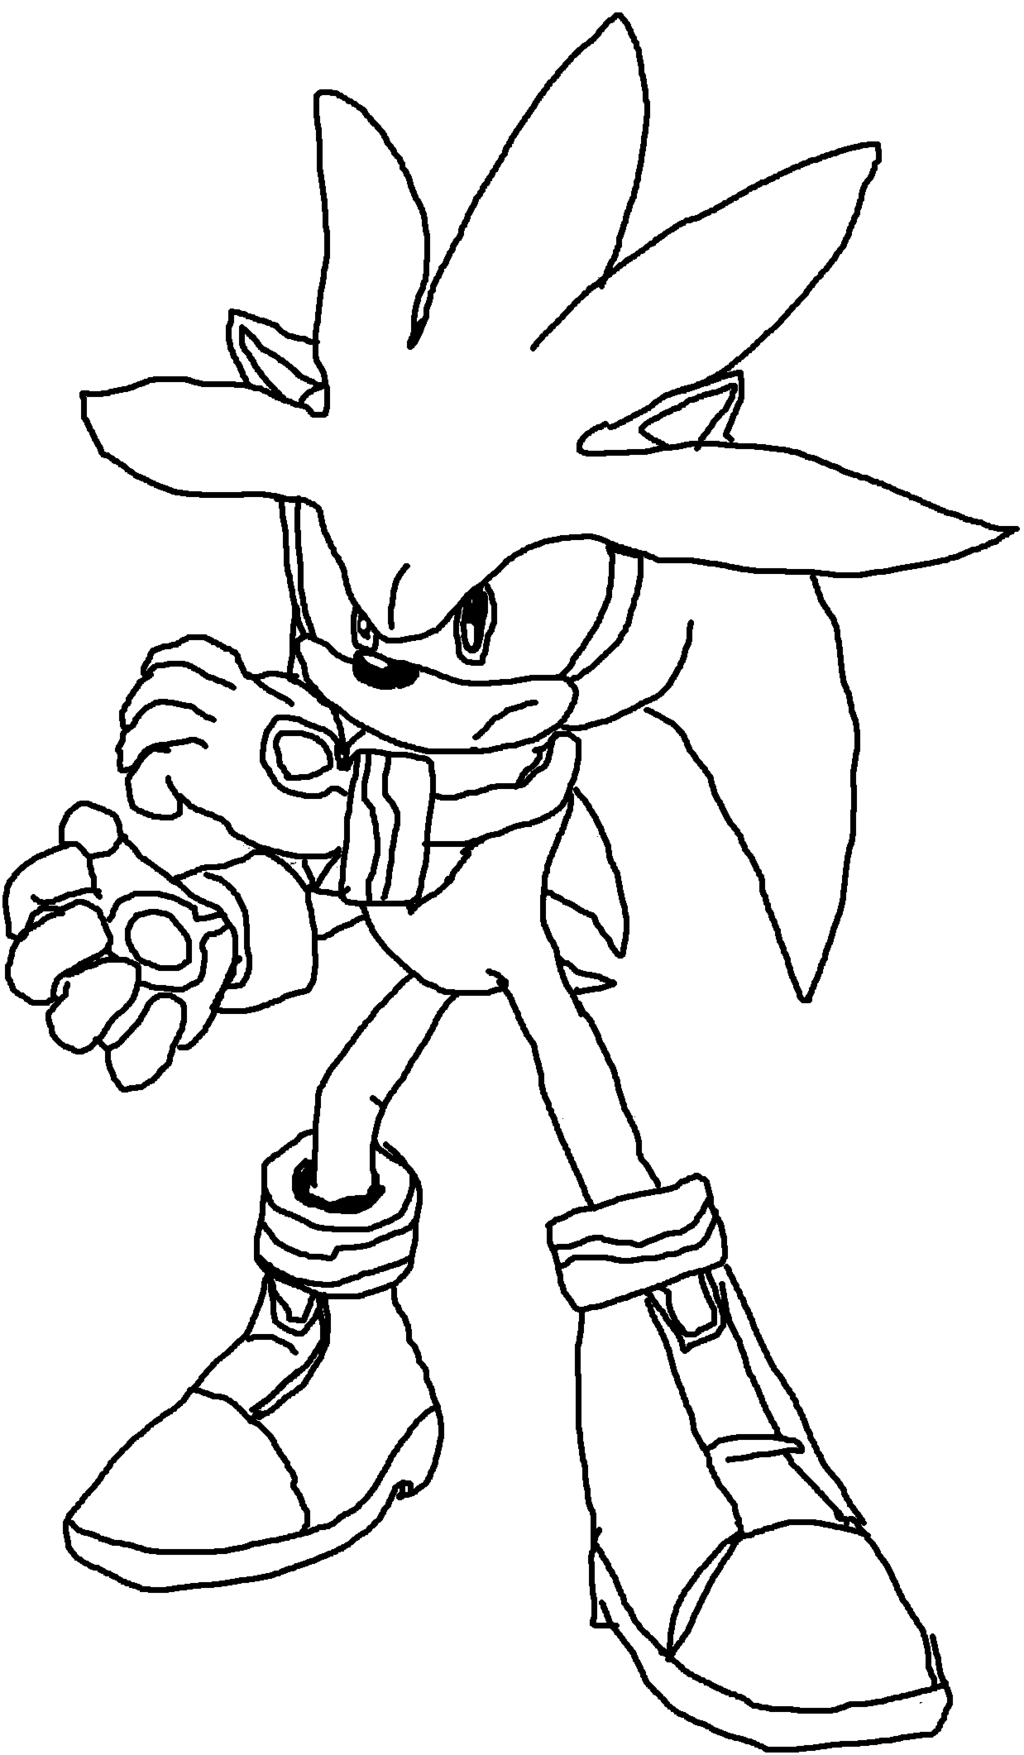 Super Silver The Hedgehog Coloring Pages Cute Coloring Pages Coloring Pages Animal Coloring Pages